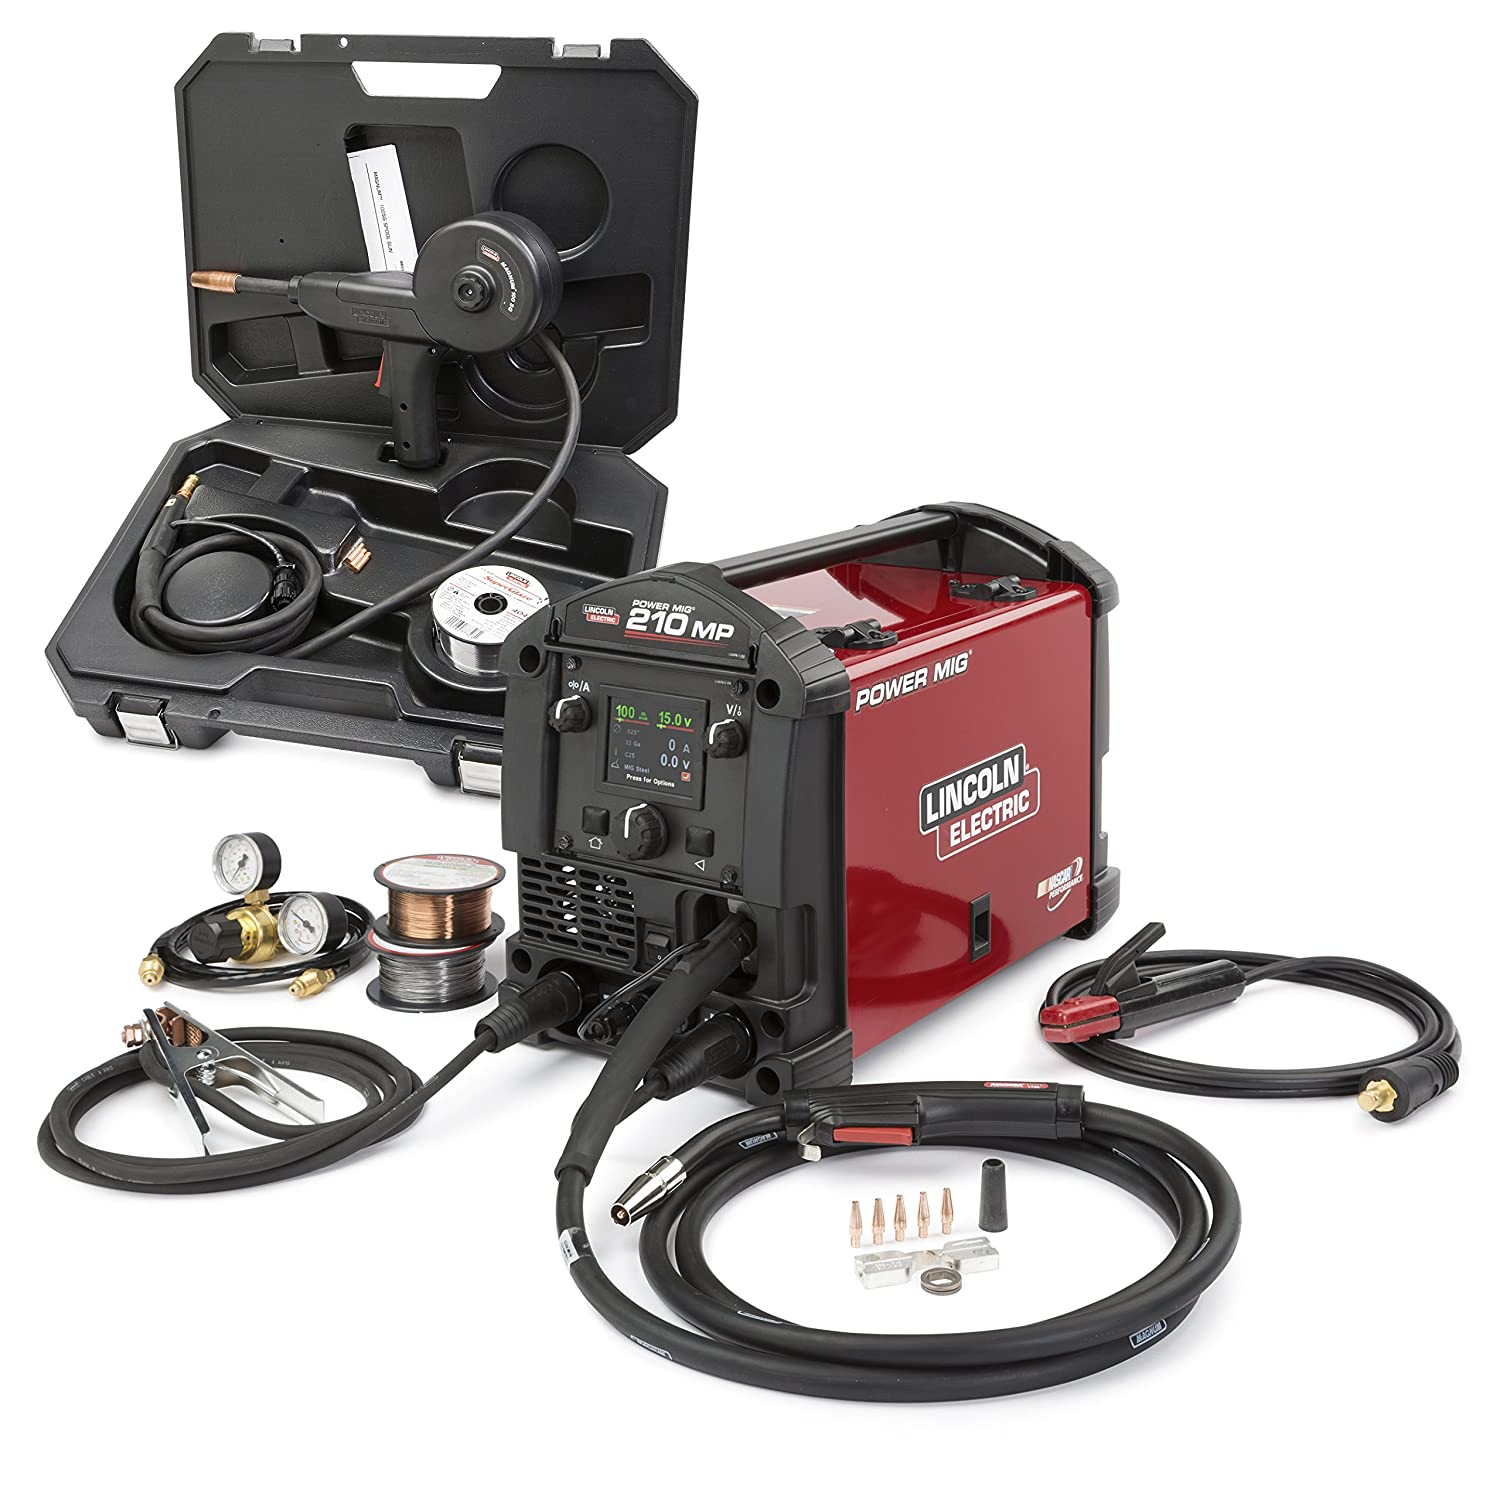 plasma welders electric review process updated pak power top tig welder reviewed cutter mig mp multi lincoln one